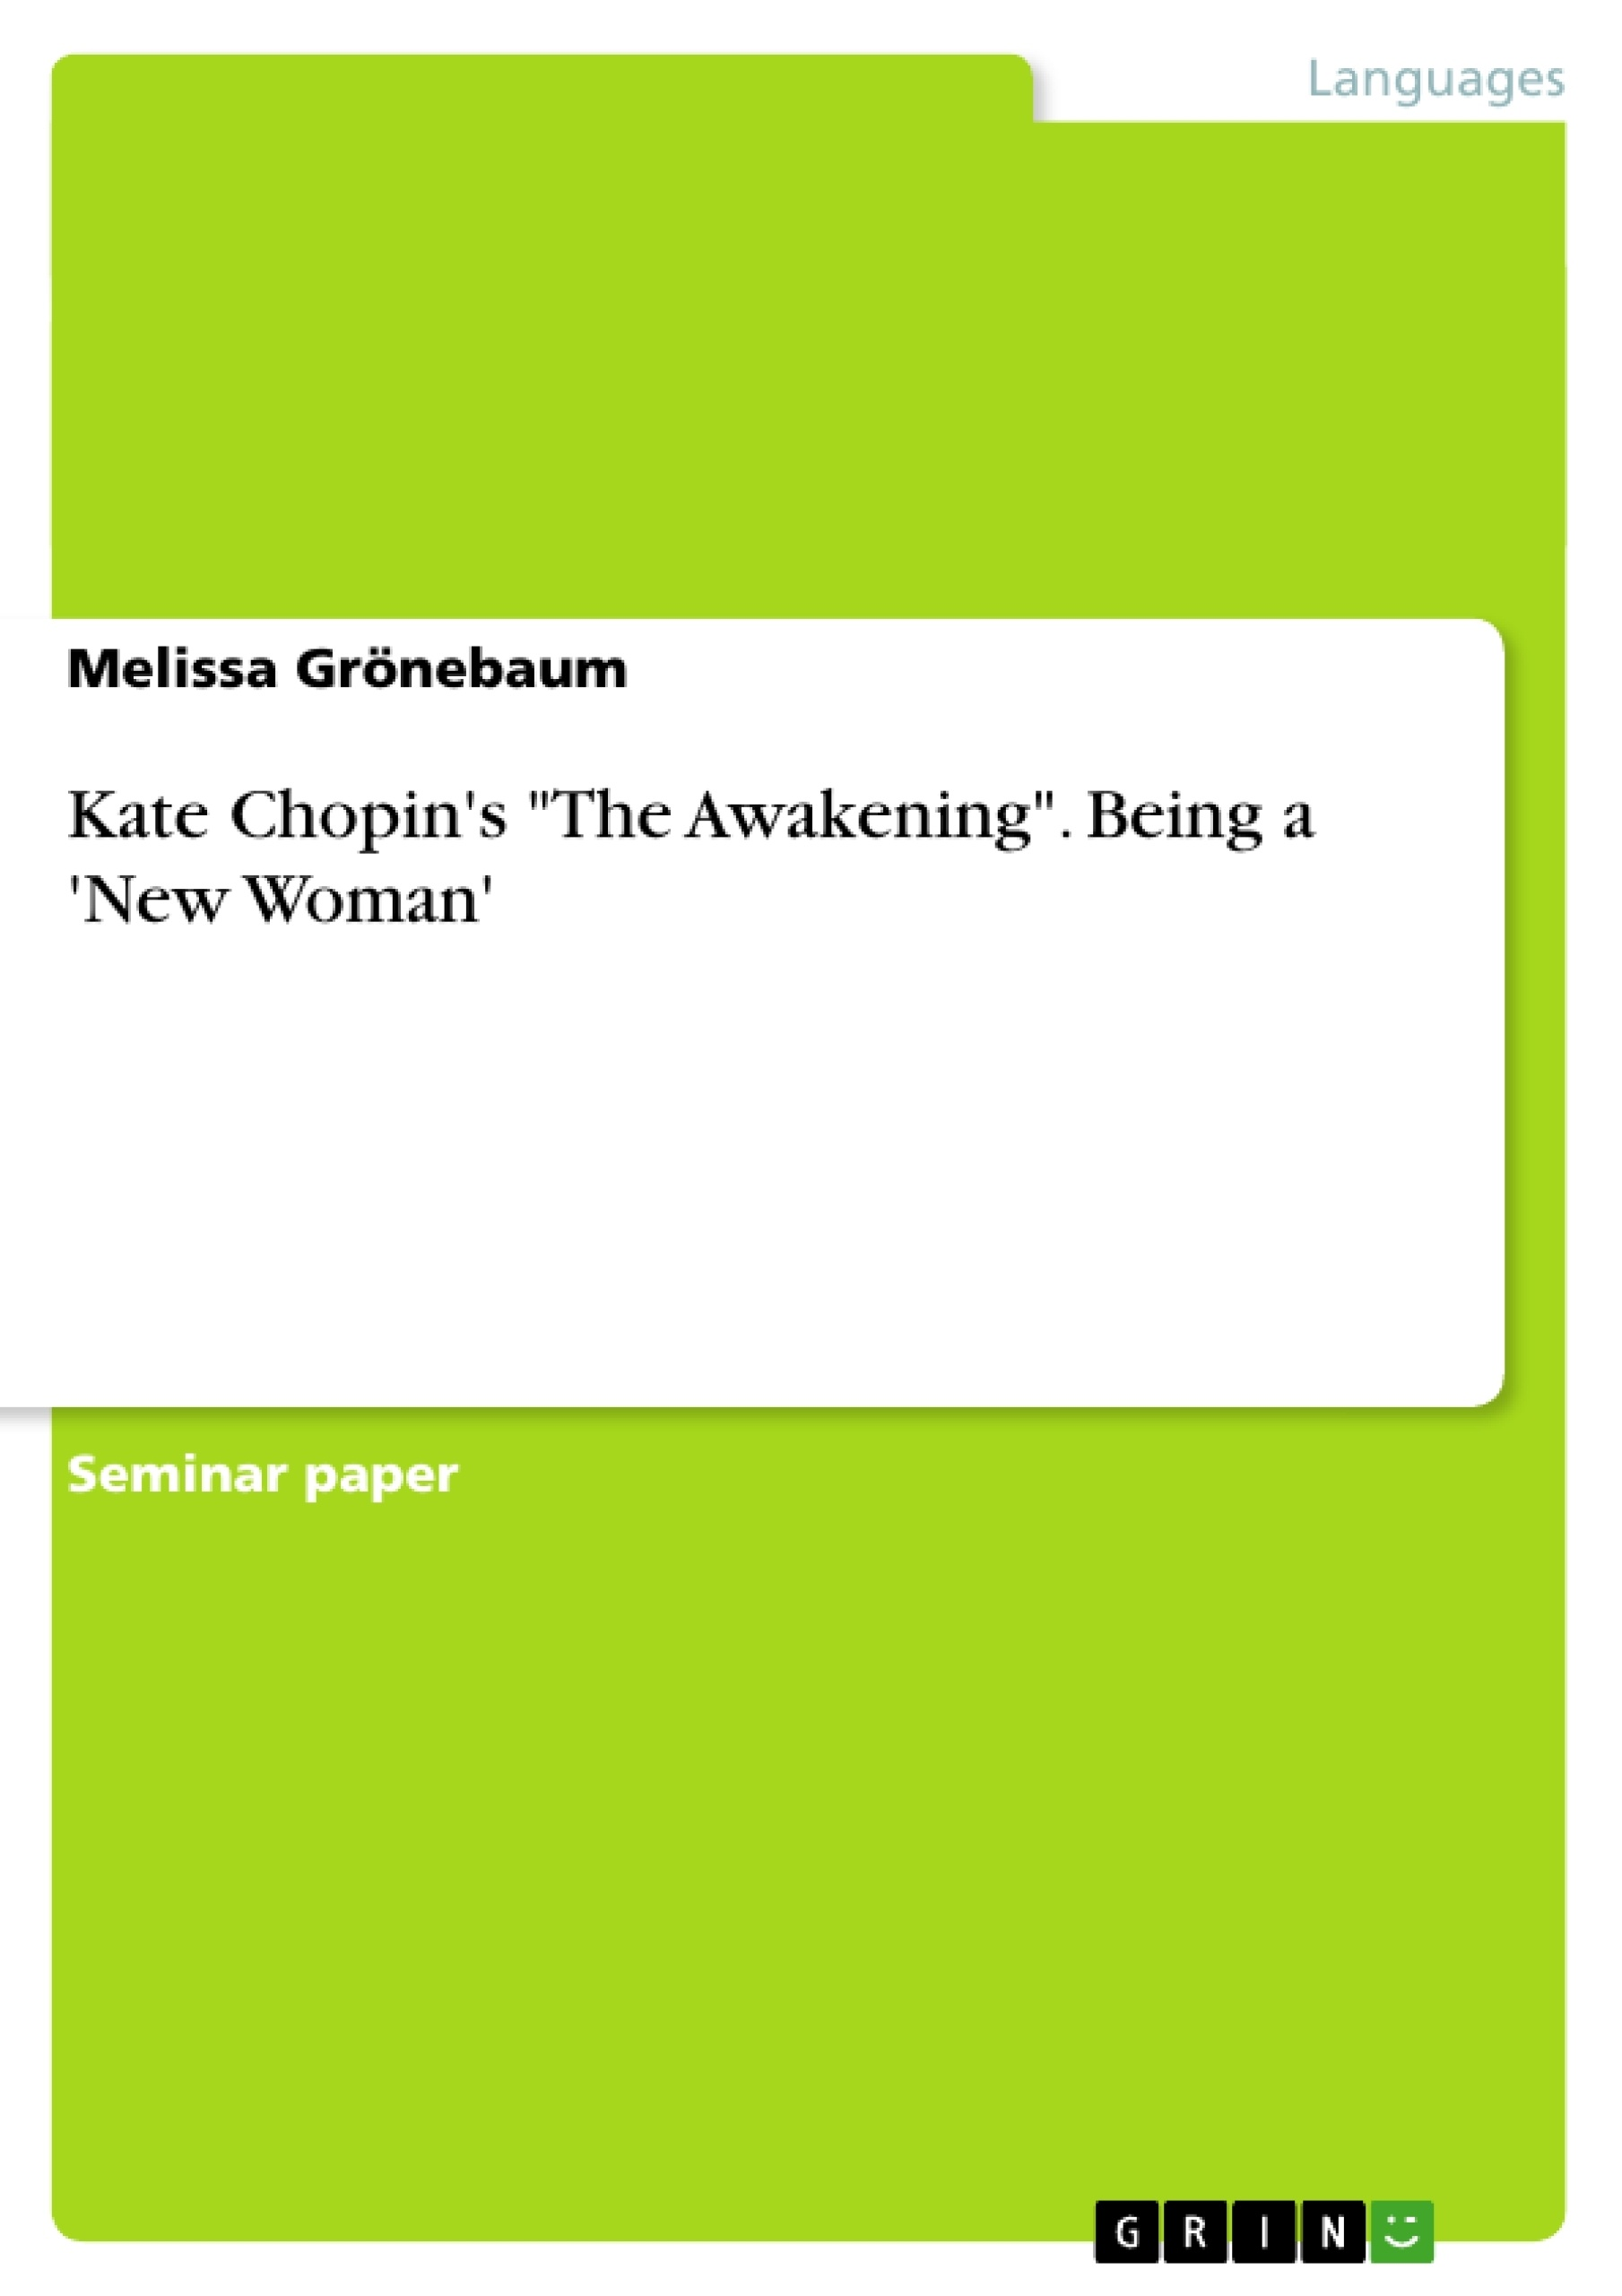 women in the awakening essay example For example, lowri turner published an article that compared men and women on a few physical traits and found that women are the weaker sex based on her criteria (turner) however, the aspects of pain threshold and tolerance reflect different results.